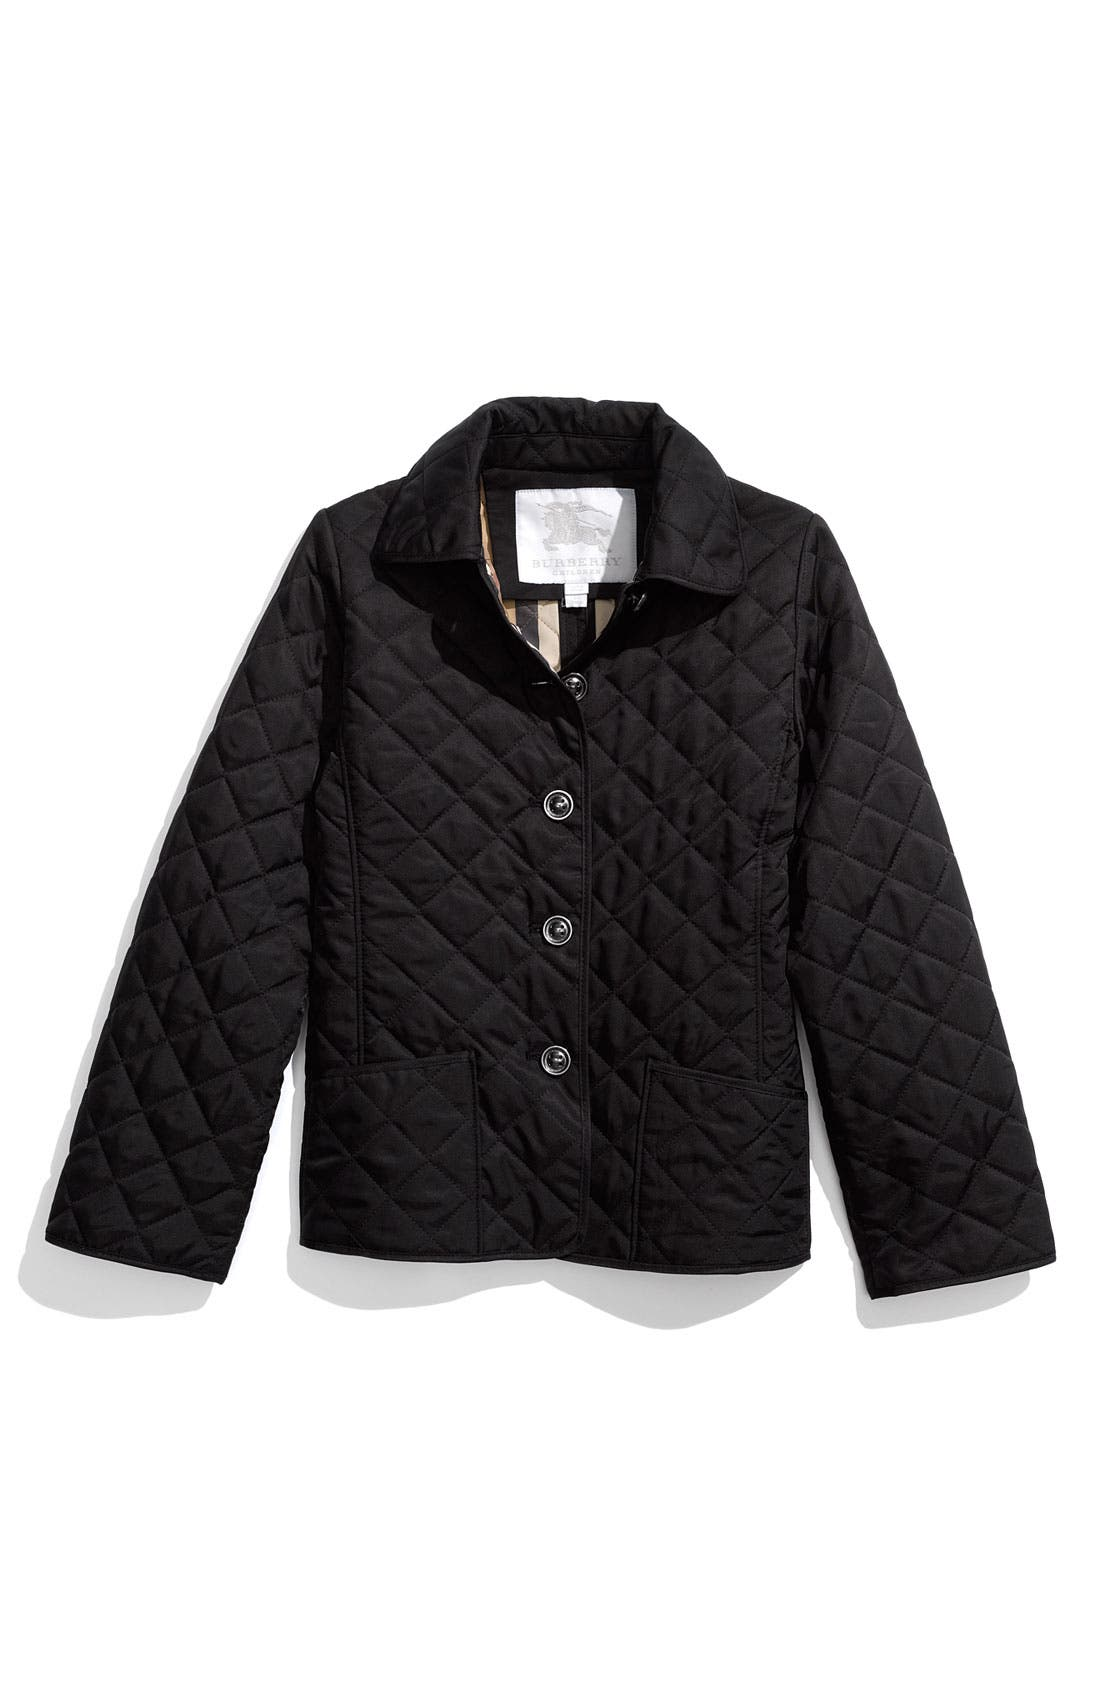 Main Image - Burberry Quilted Jacket (Big Girls)